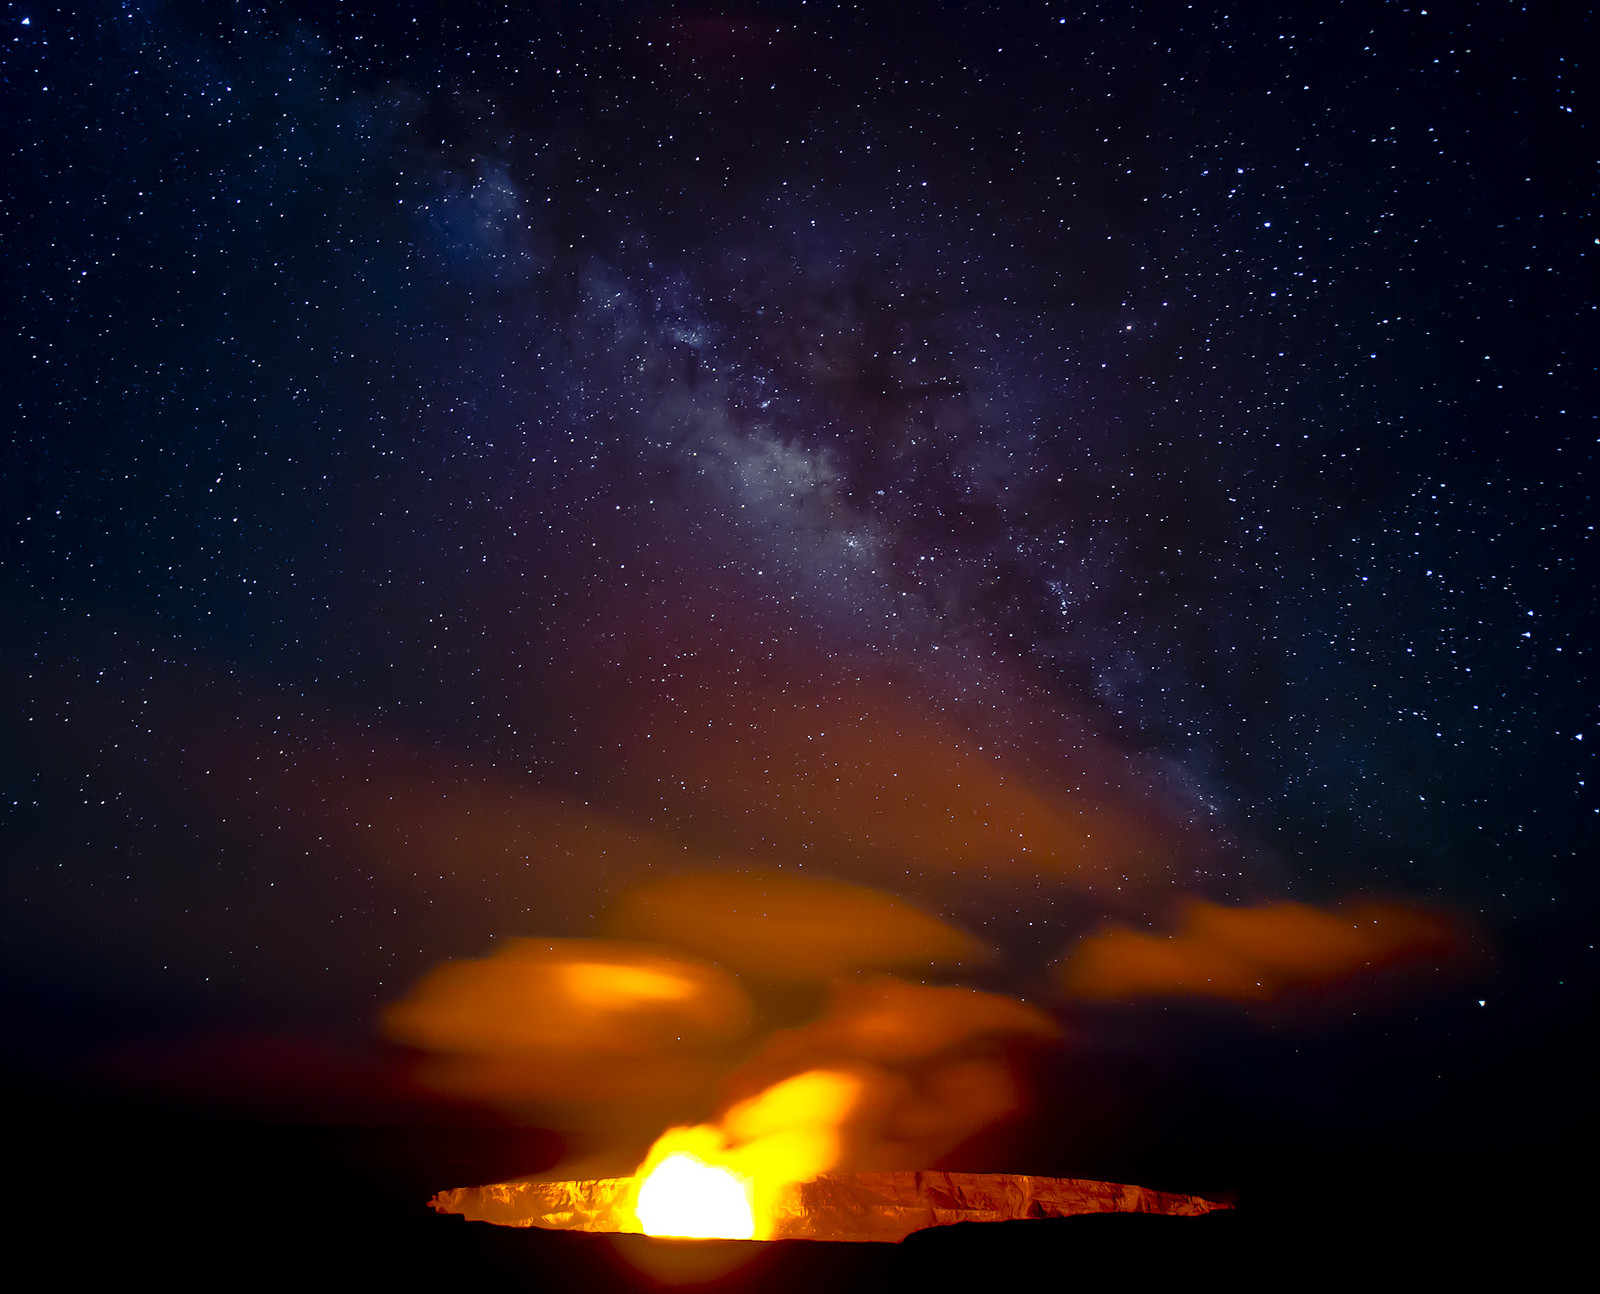 Hawaii's Volcanic spectacle and Pele the Fire Goddess